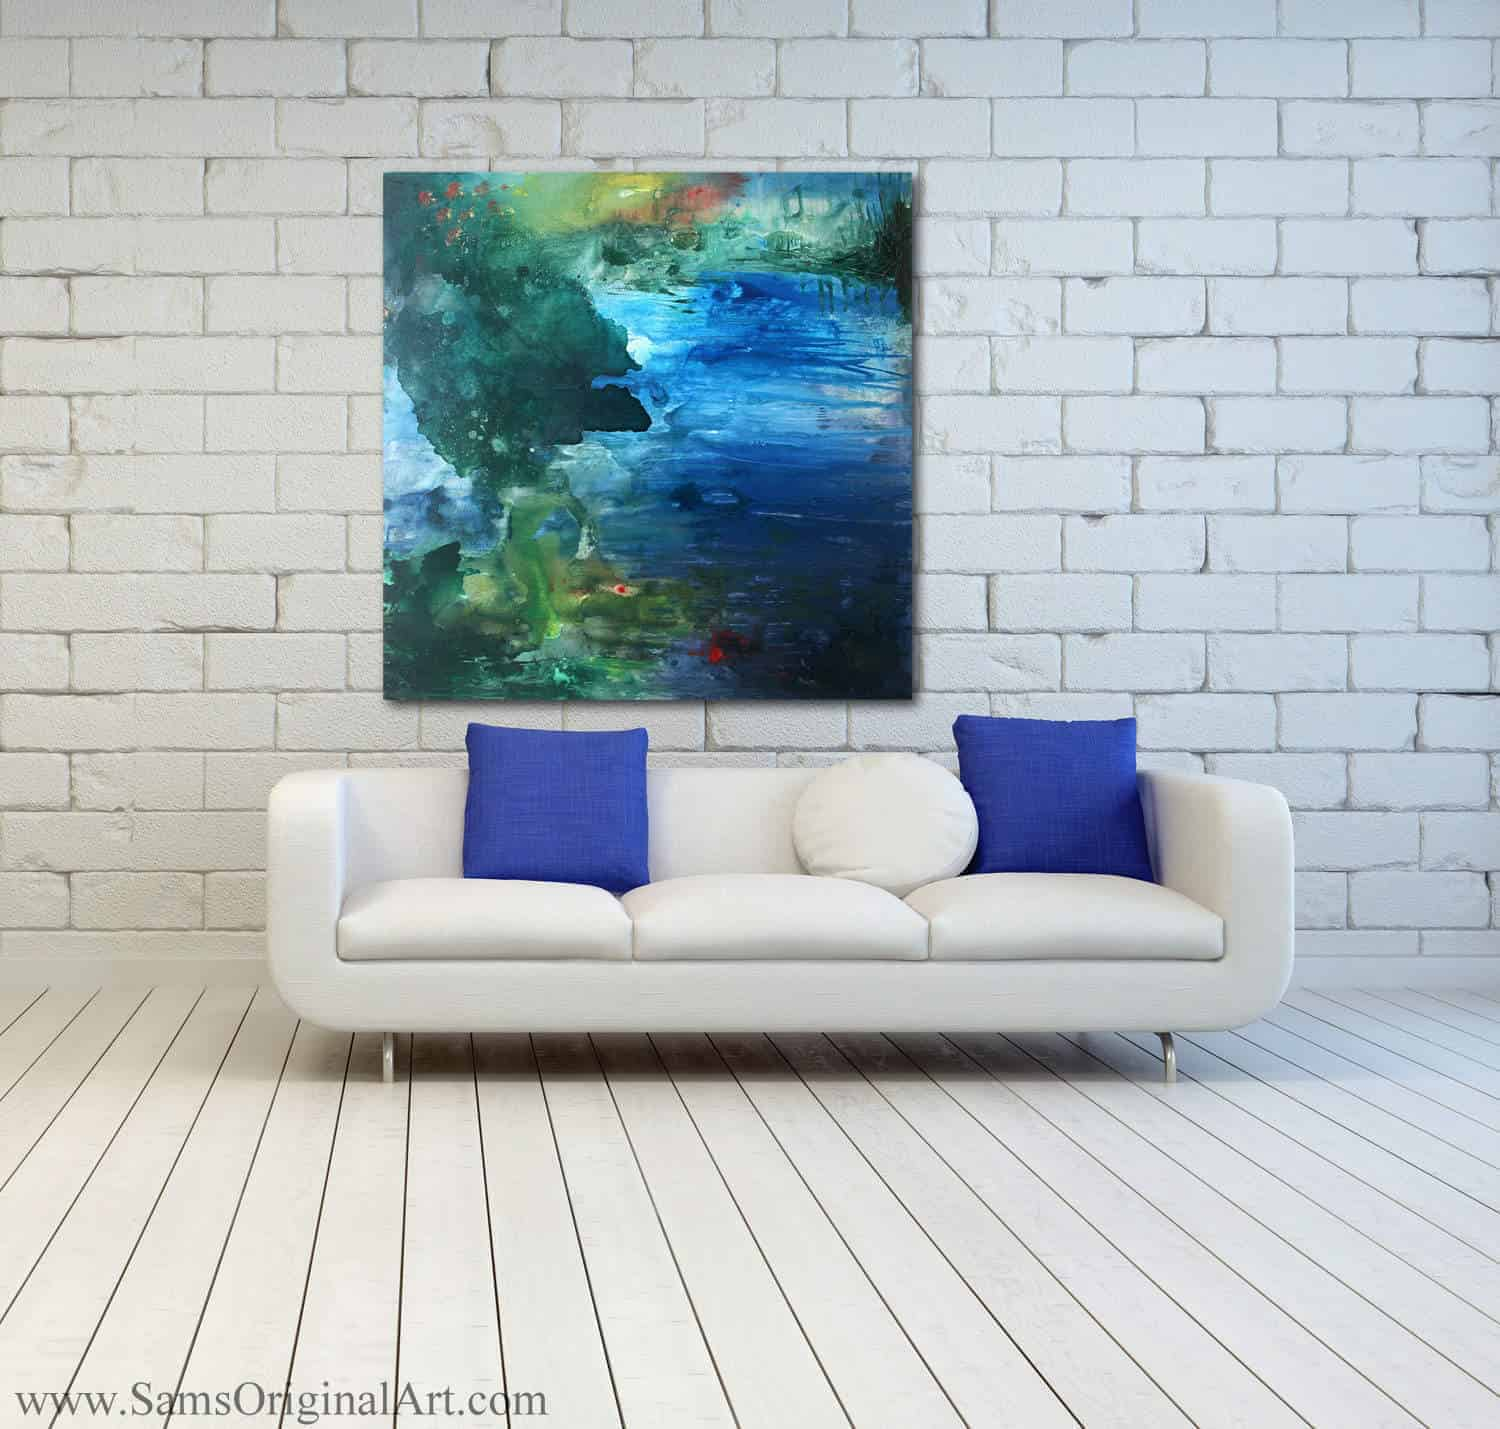 Modern Giclee Wall Print Title: Immersion